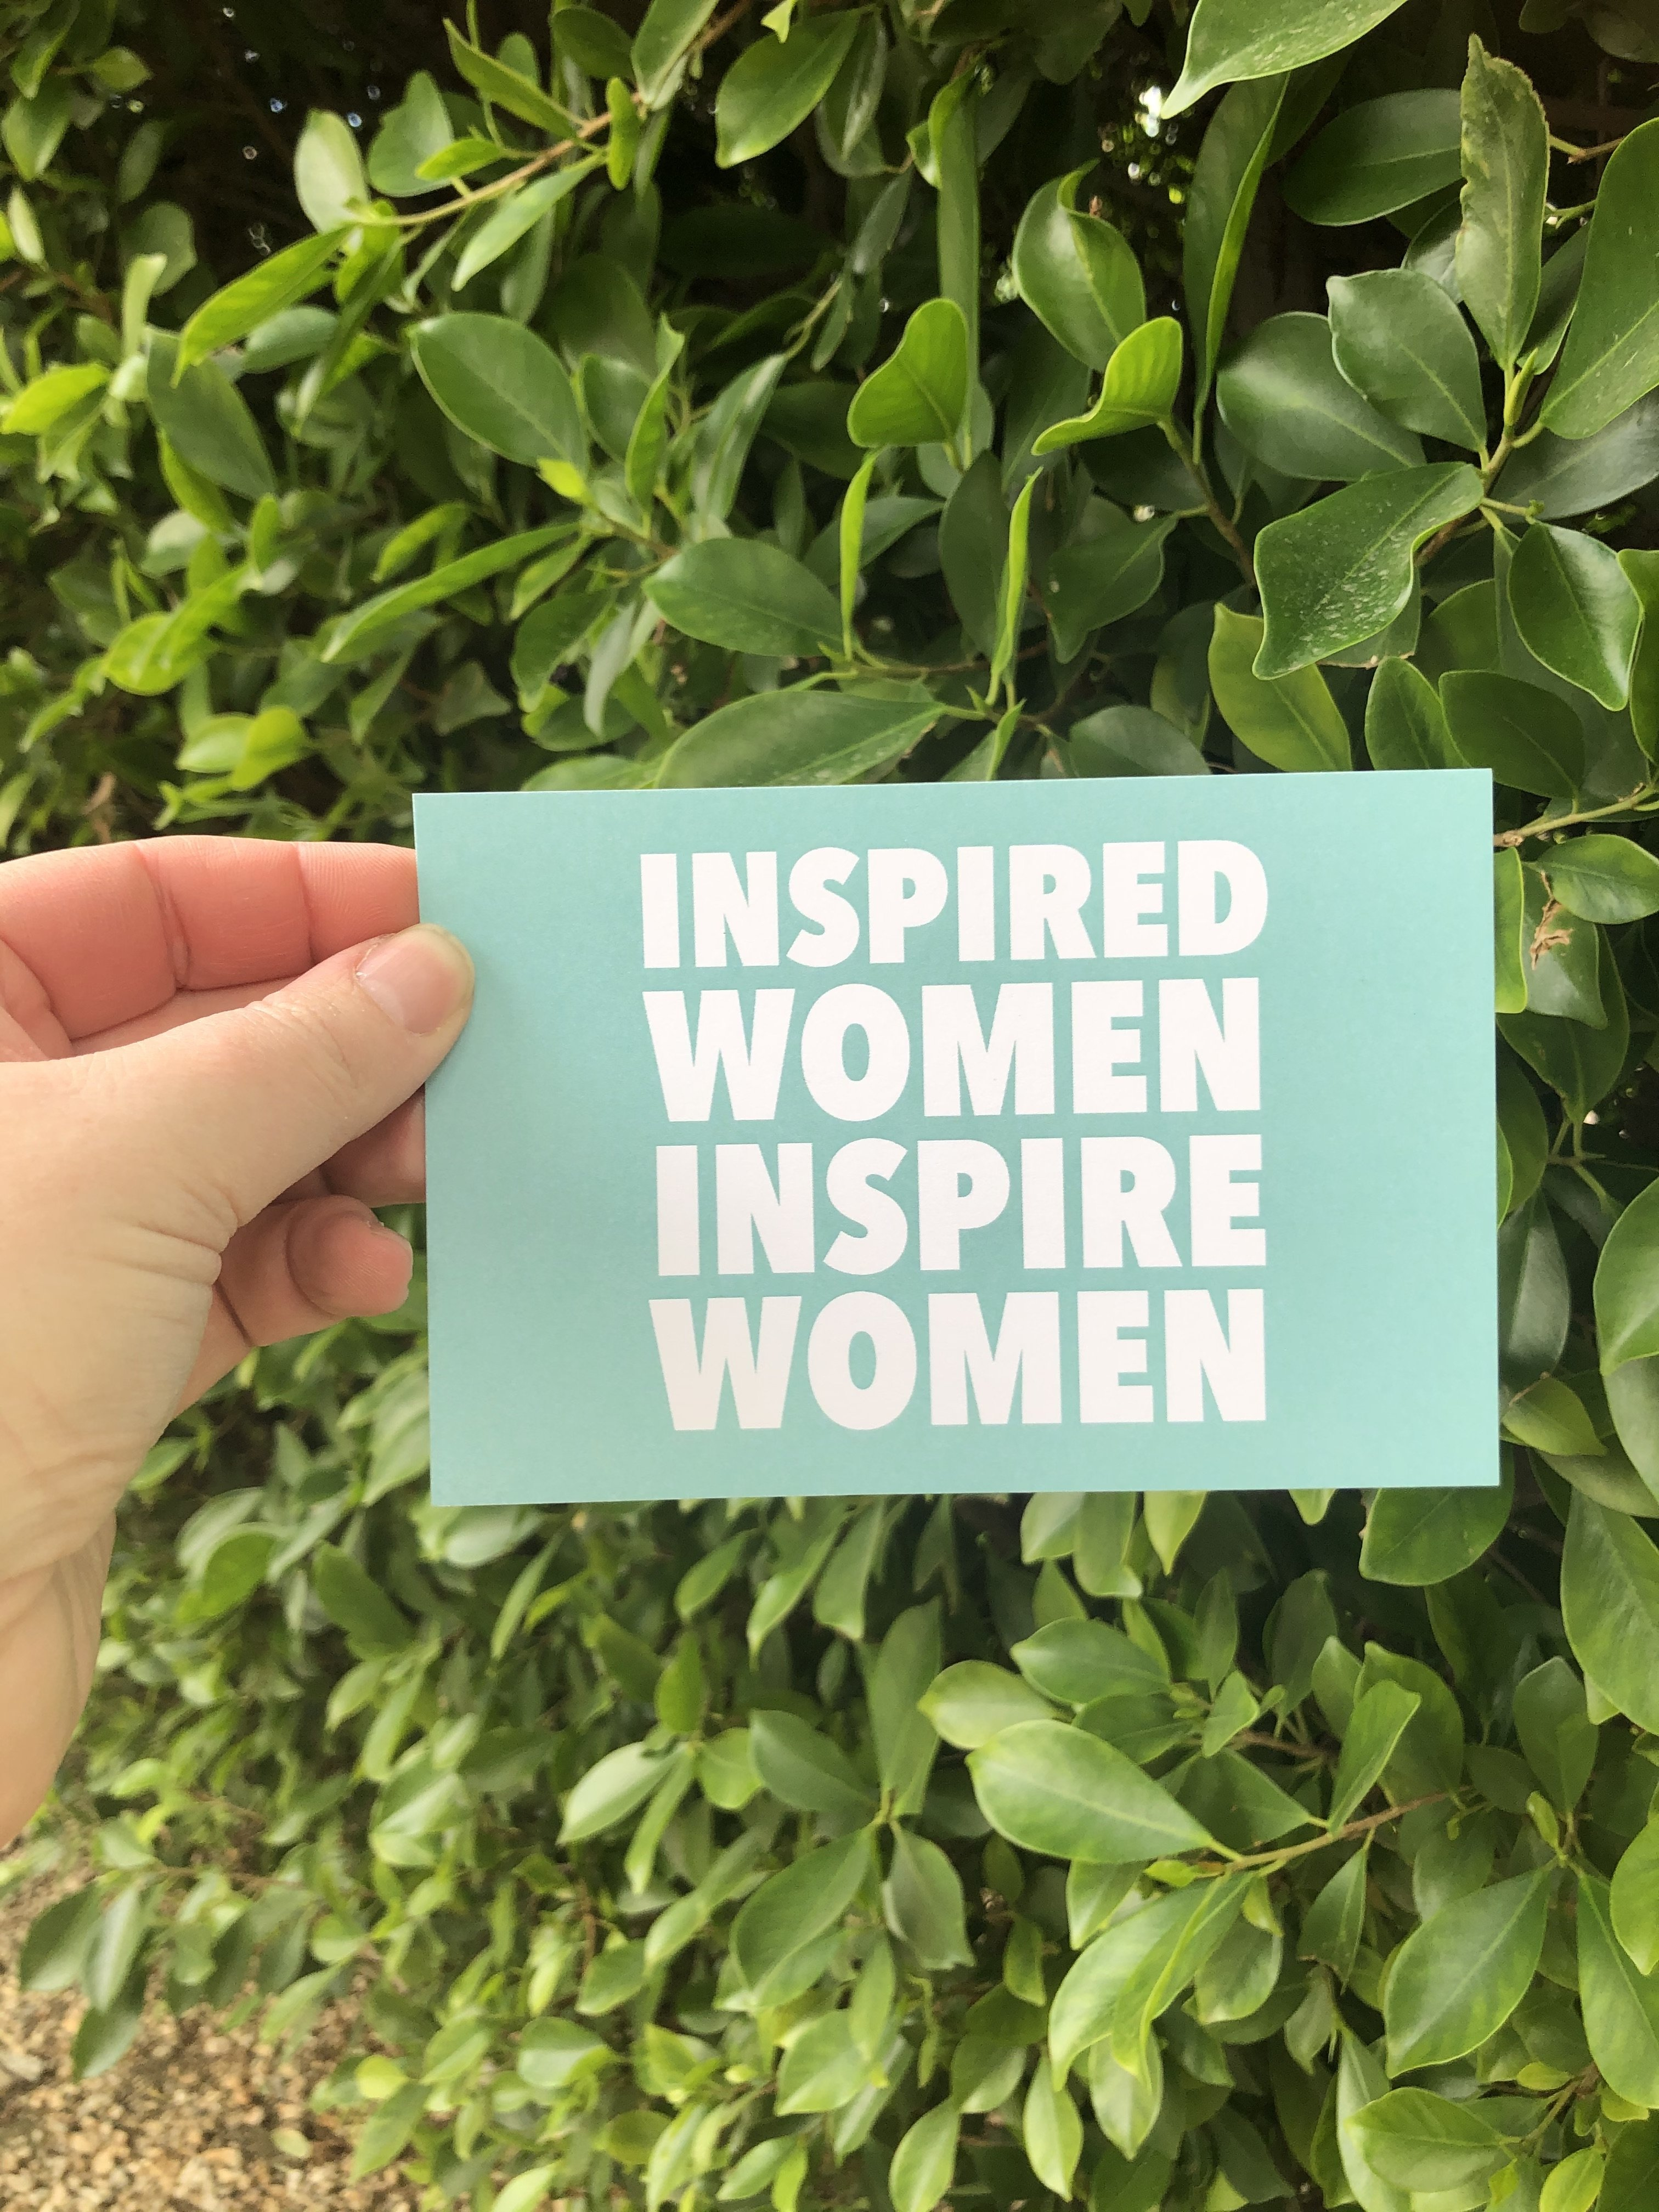 15 Inspirational Quotes for Women